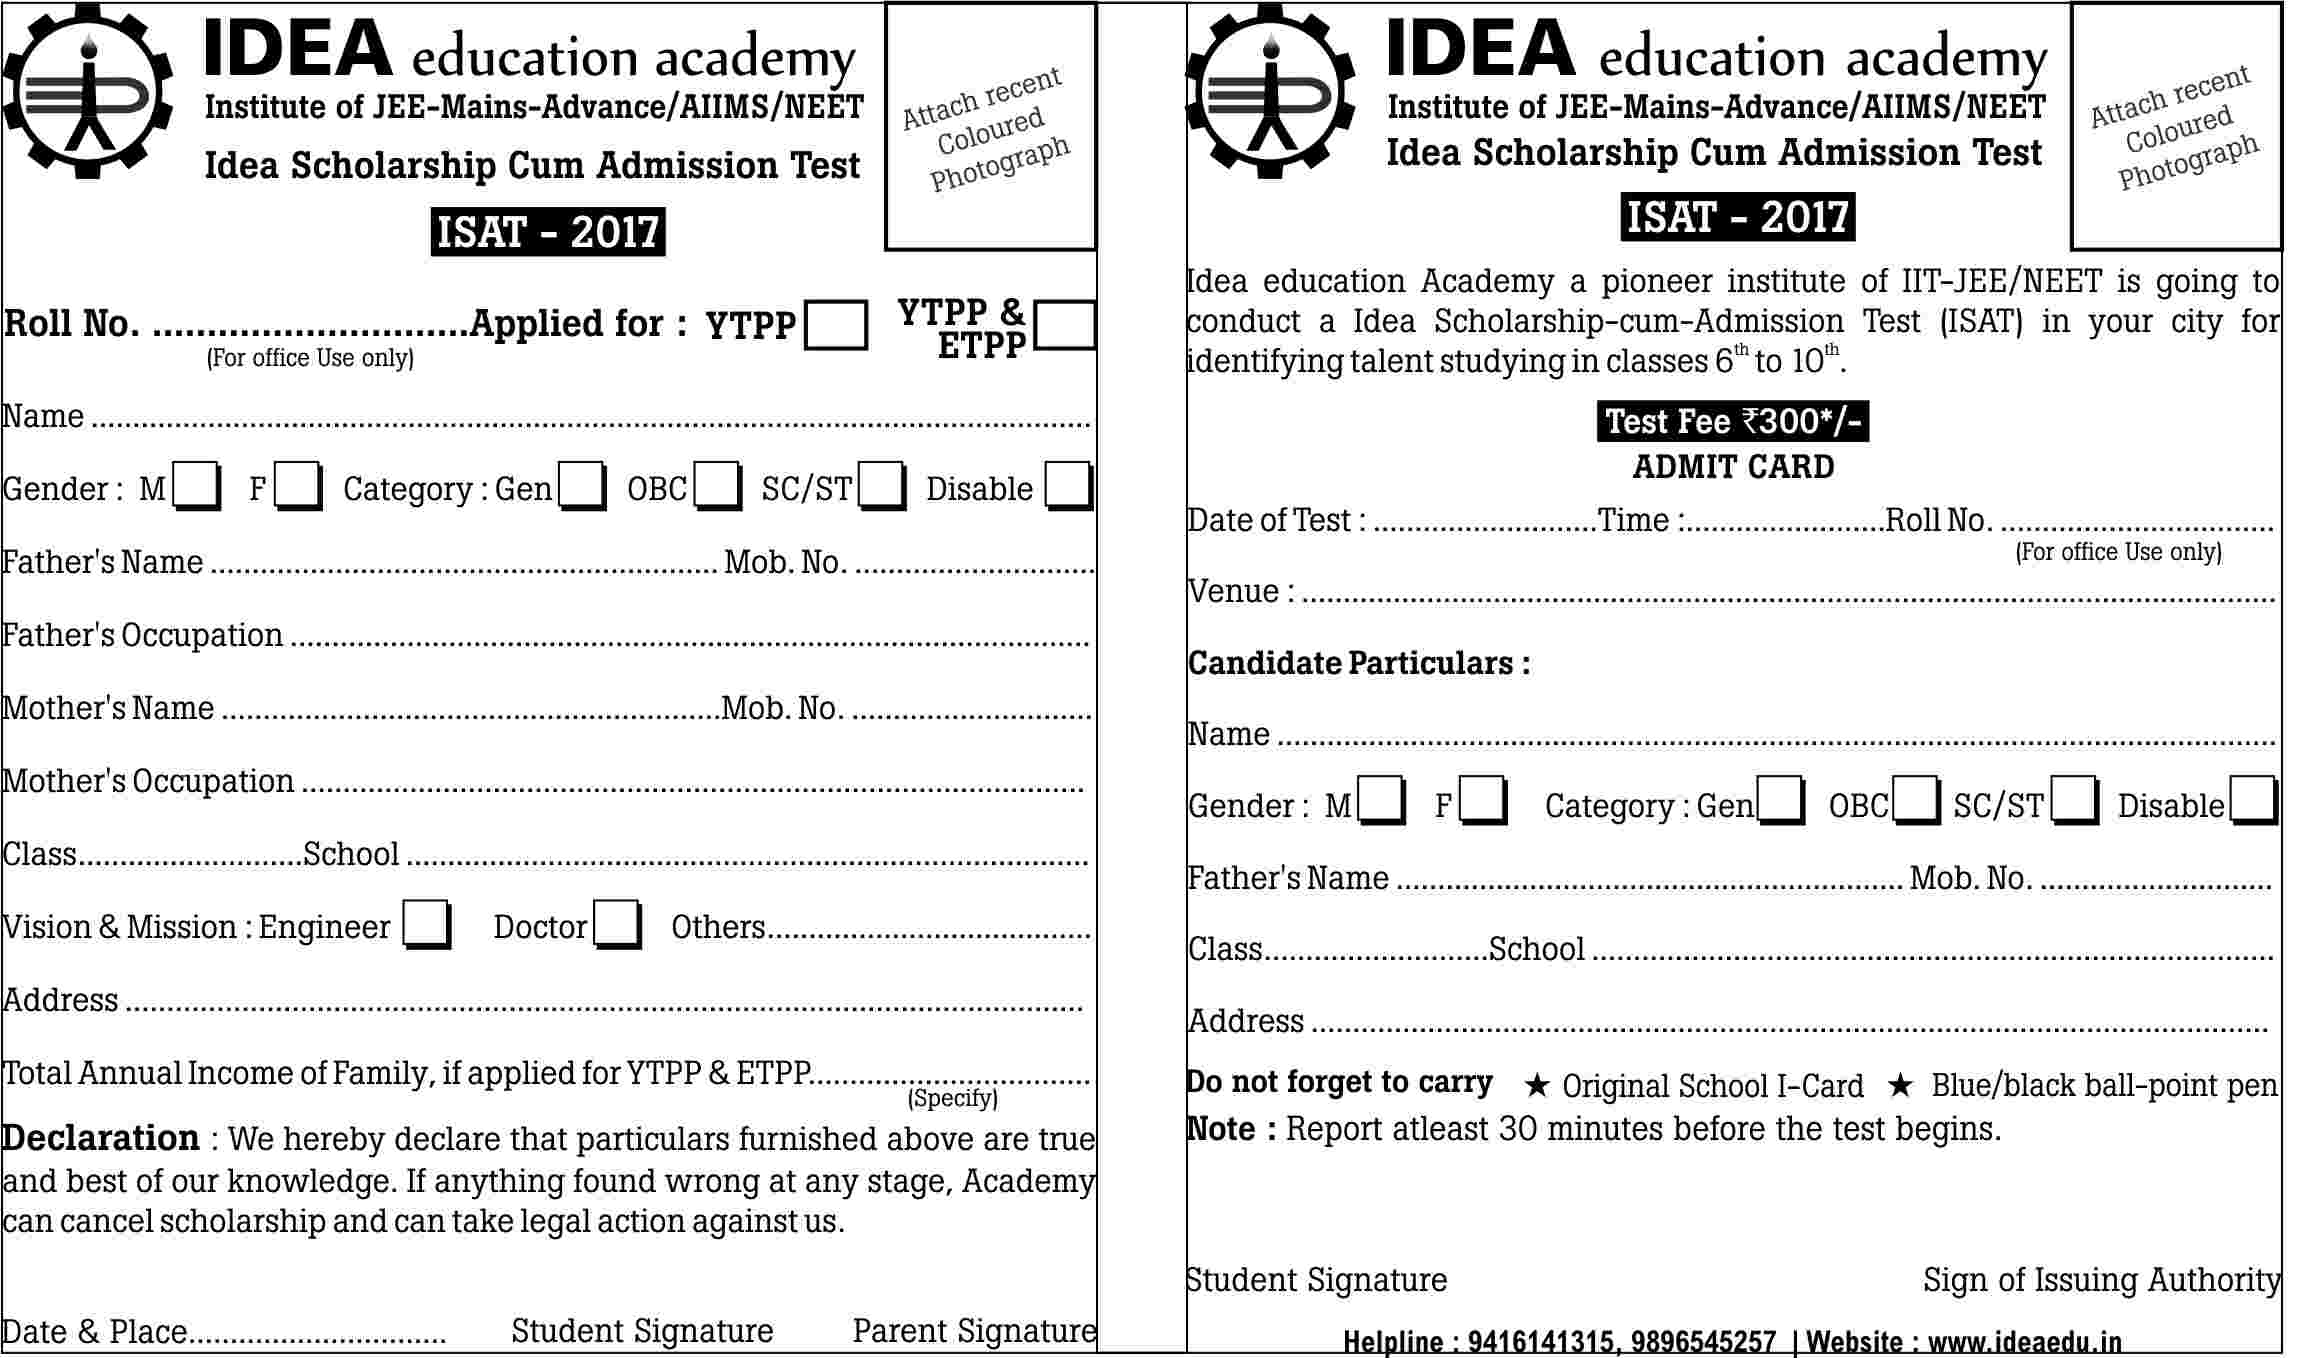 Merit Scholarships for SAT and ACT Scores